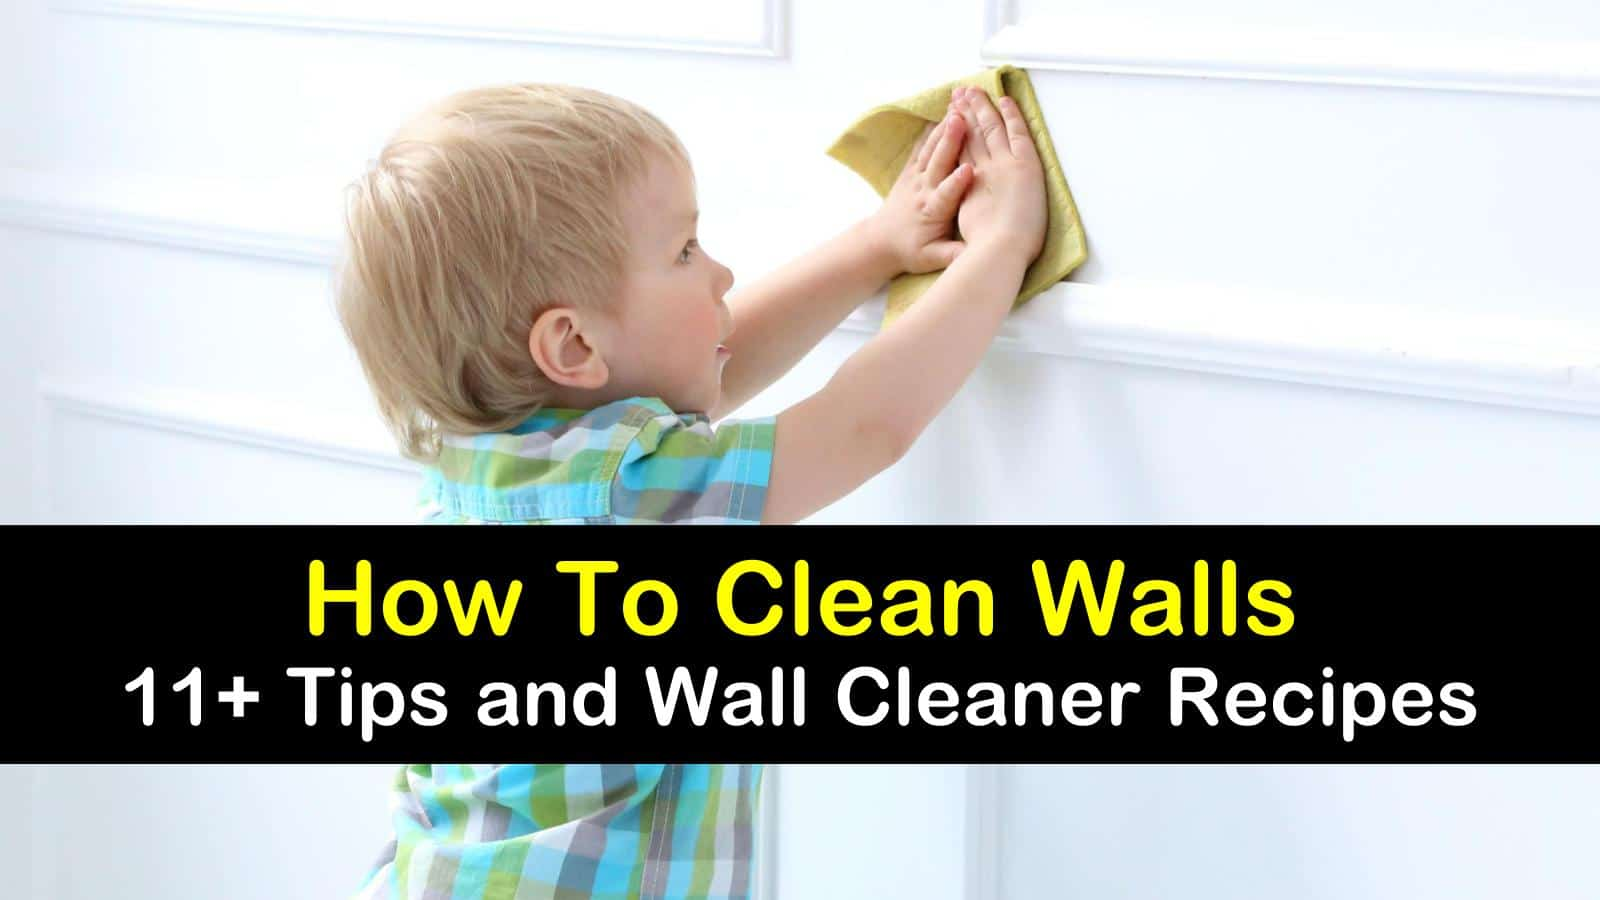 how to clean walls titleimg1